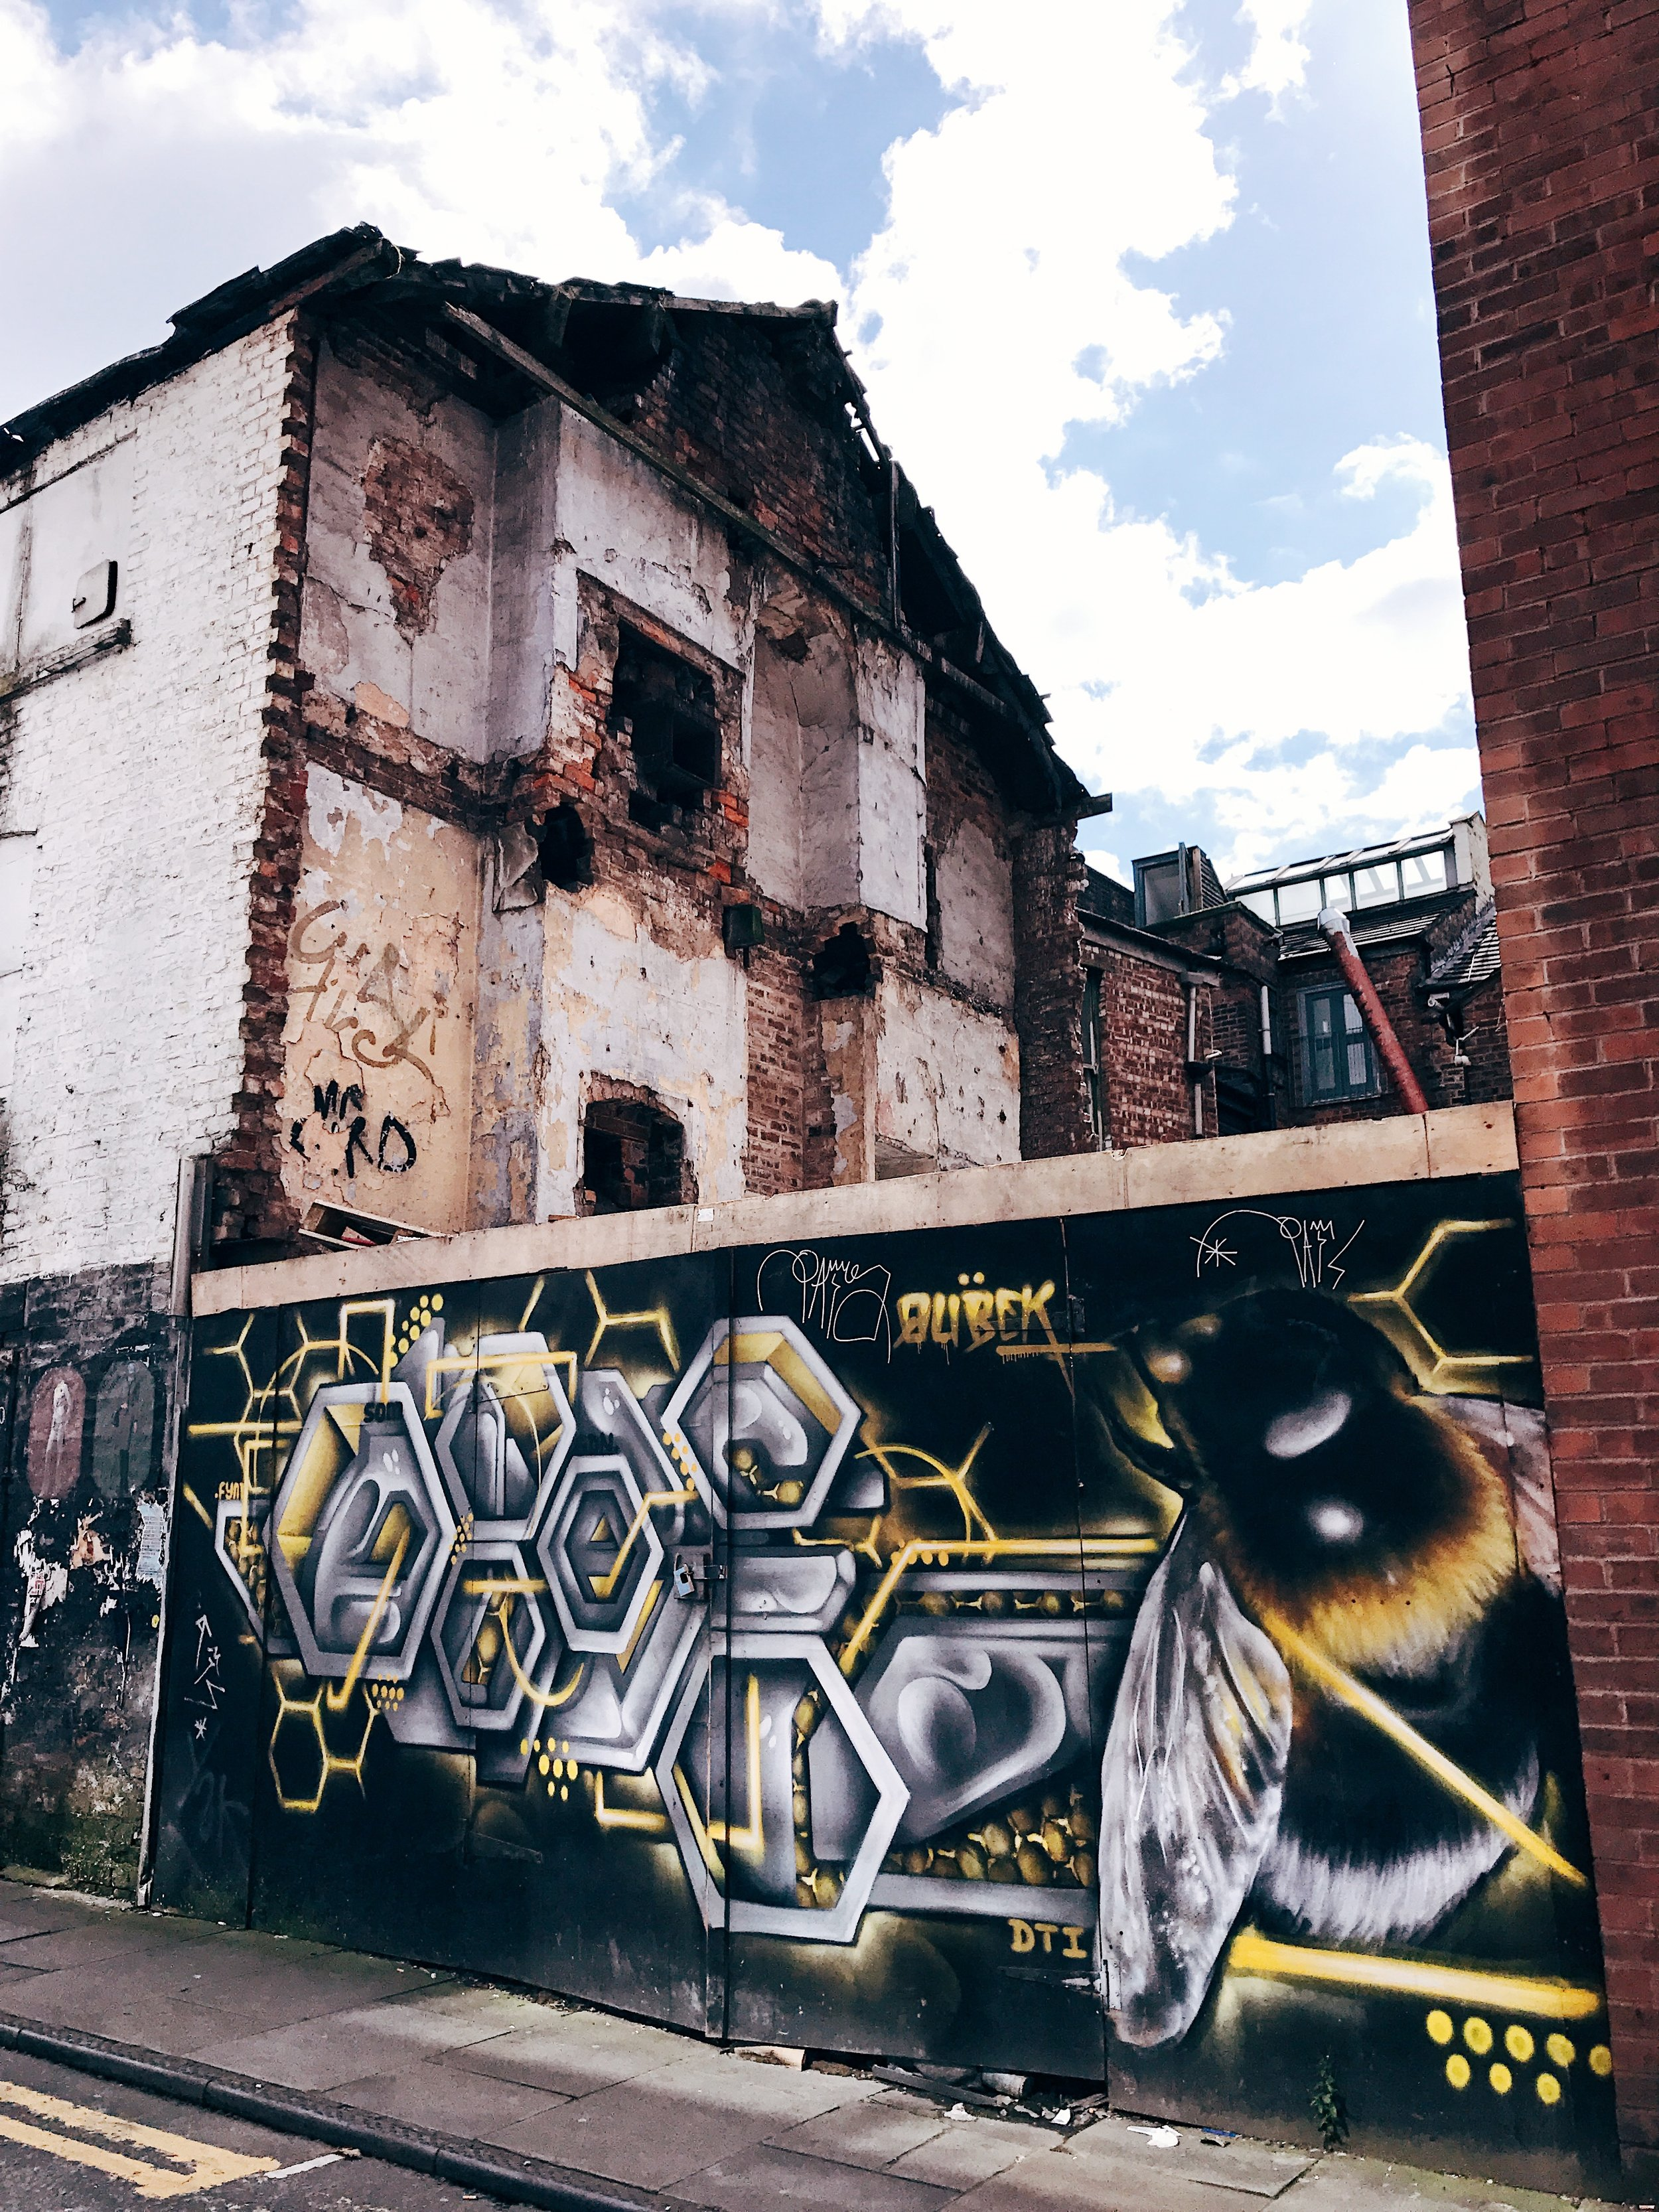 The Worker Bee, a symbol for the city since the Industrial Revolution, can be found throughout the city.